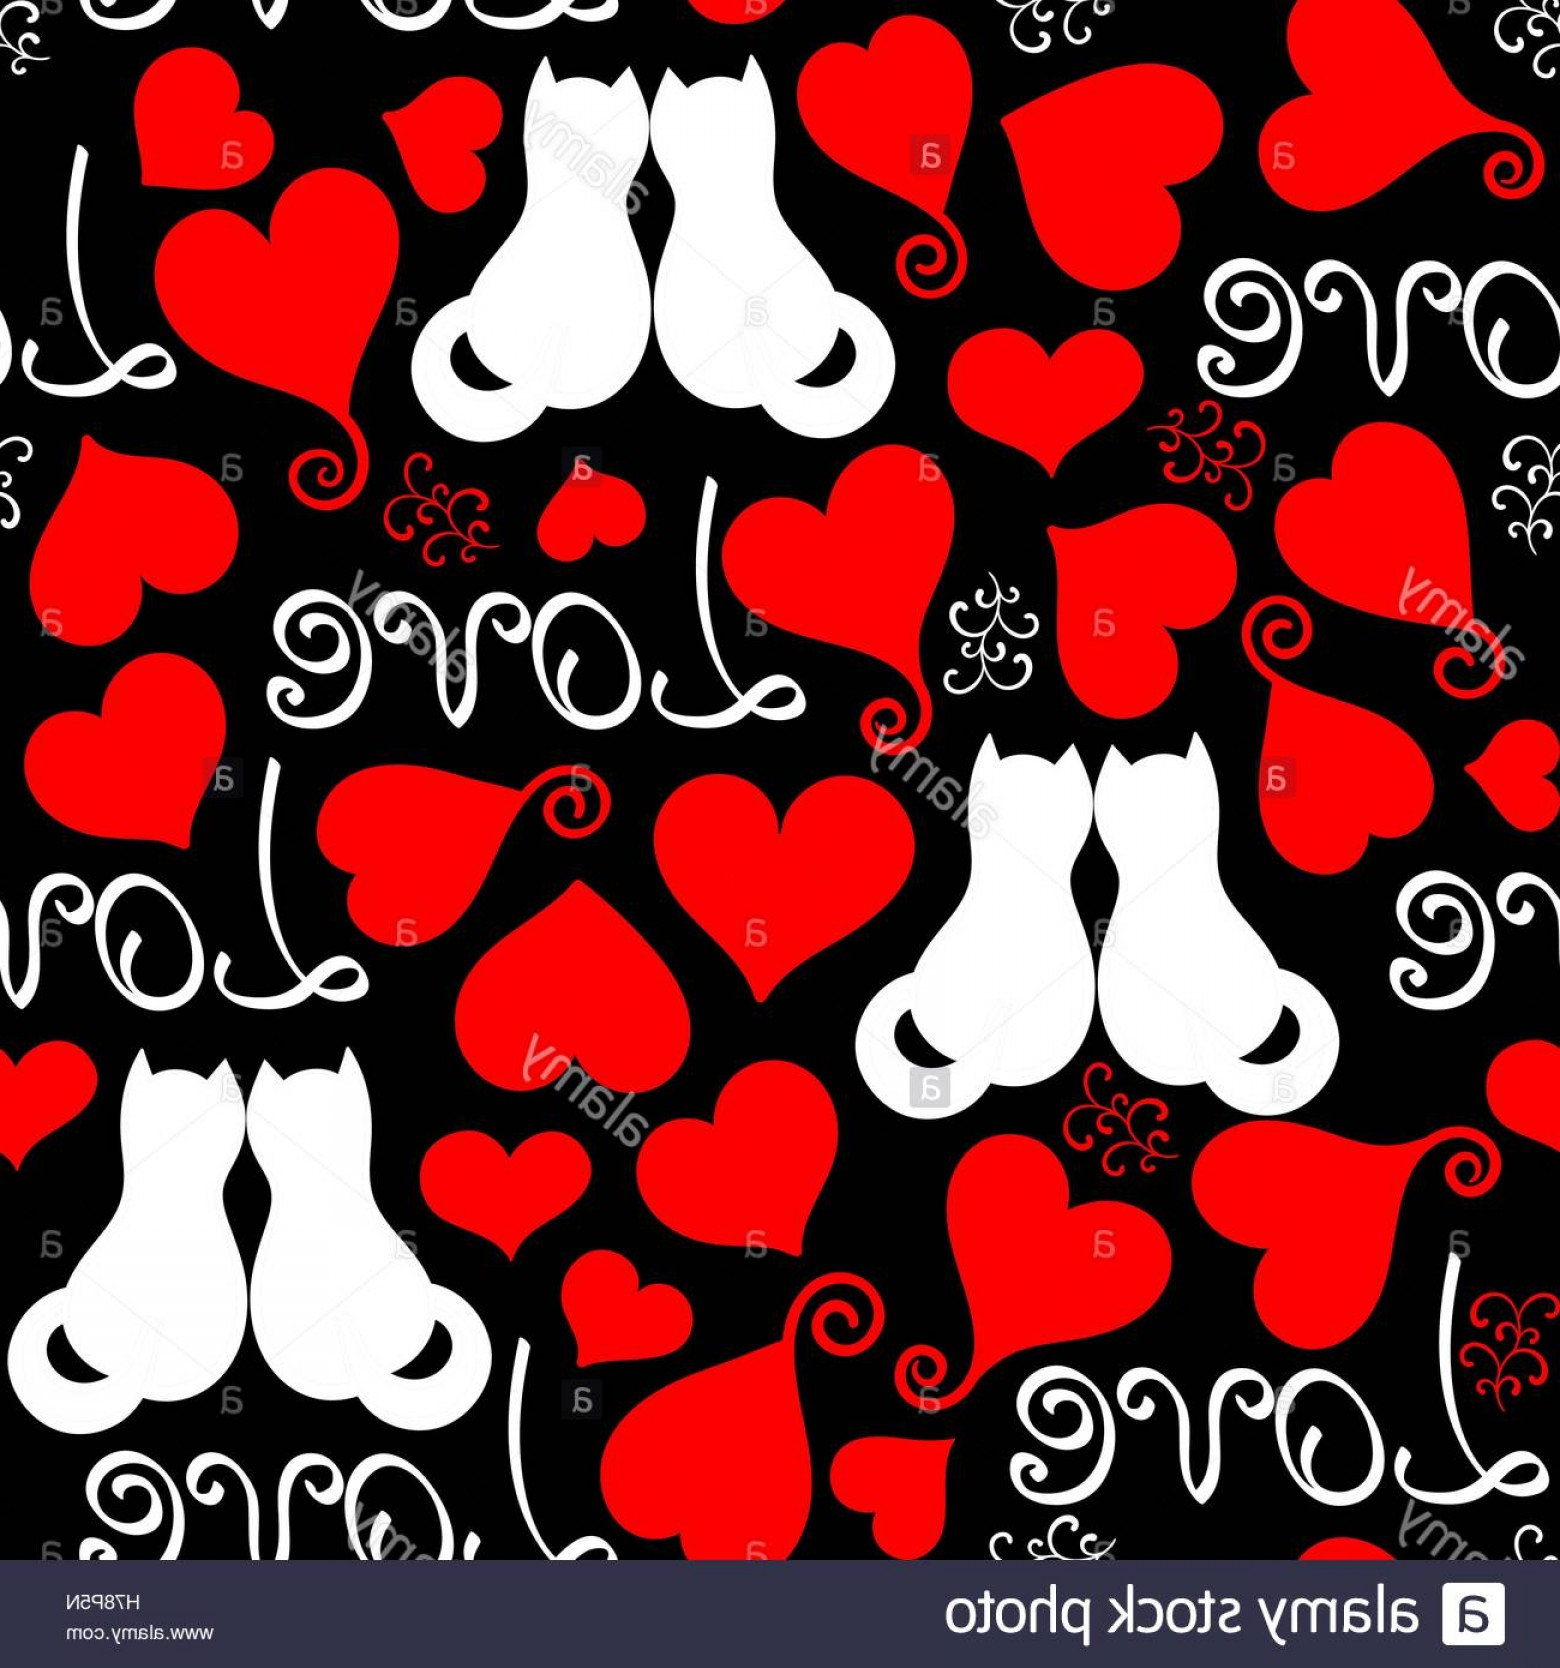 Red Black And White Vector Art: Stock Photo Vector Hand Drawn Line Red Black And White Hearts Lettering And Cats